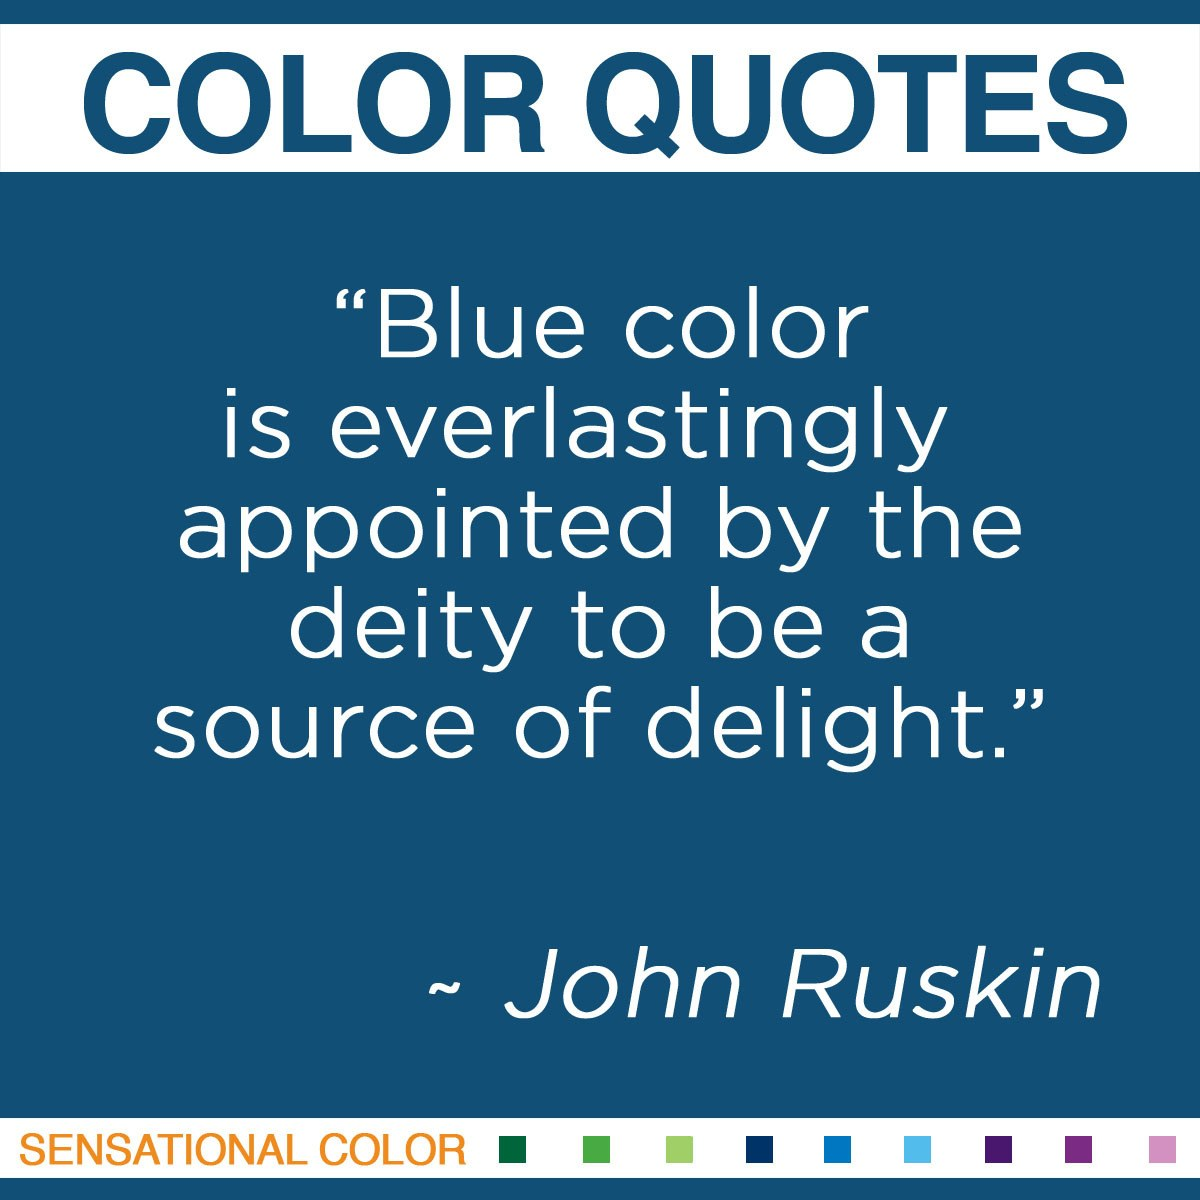 """Blue color is everlastingly appointed by the deity to be a source of delight."" - John Ruskin"